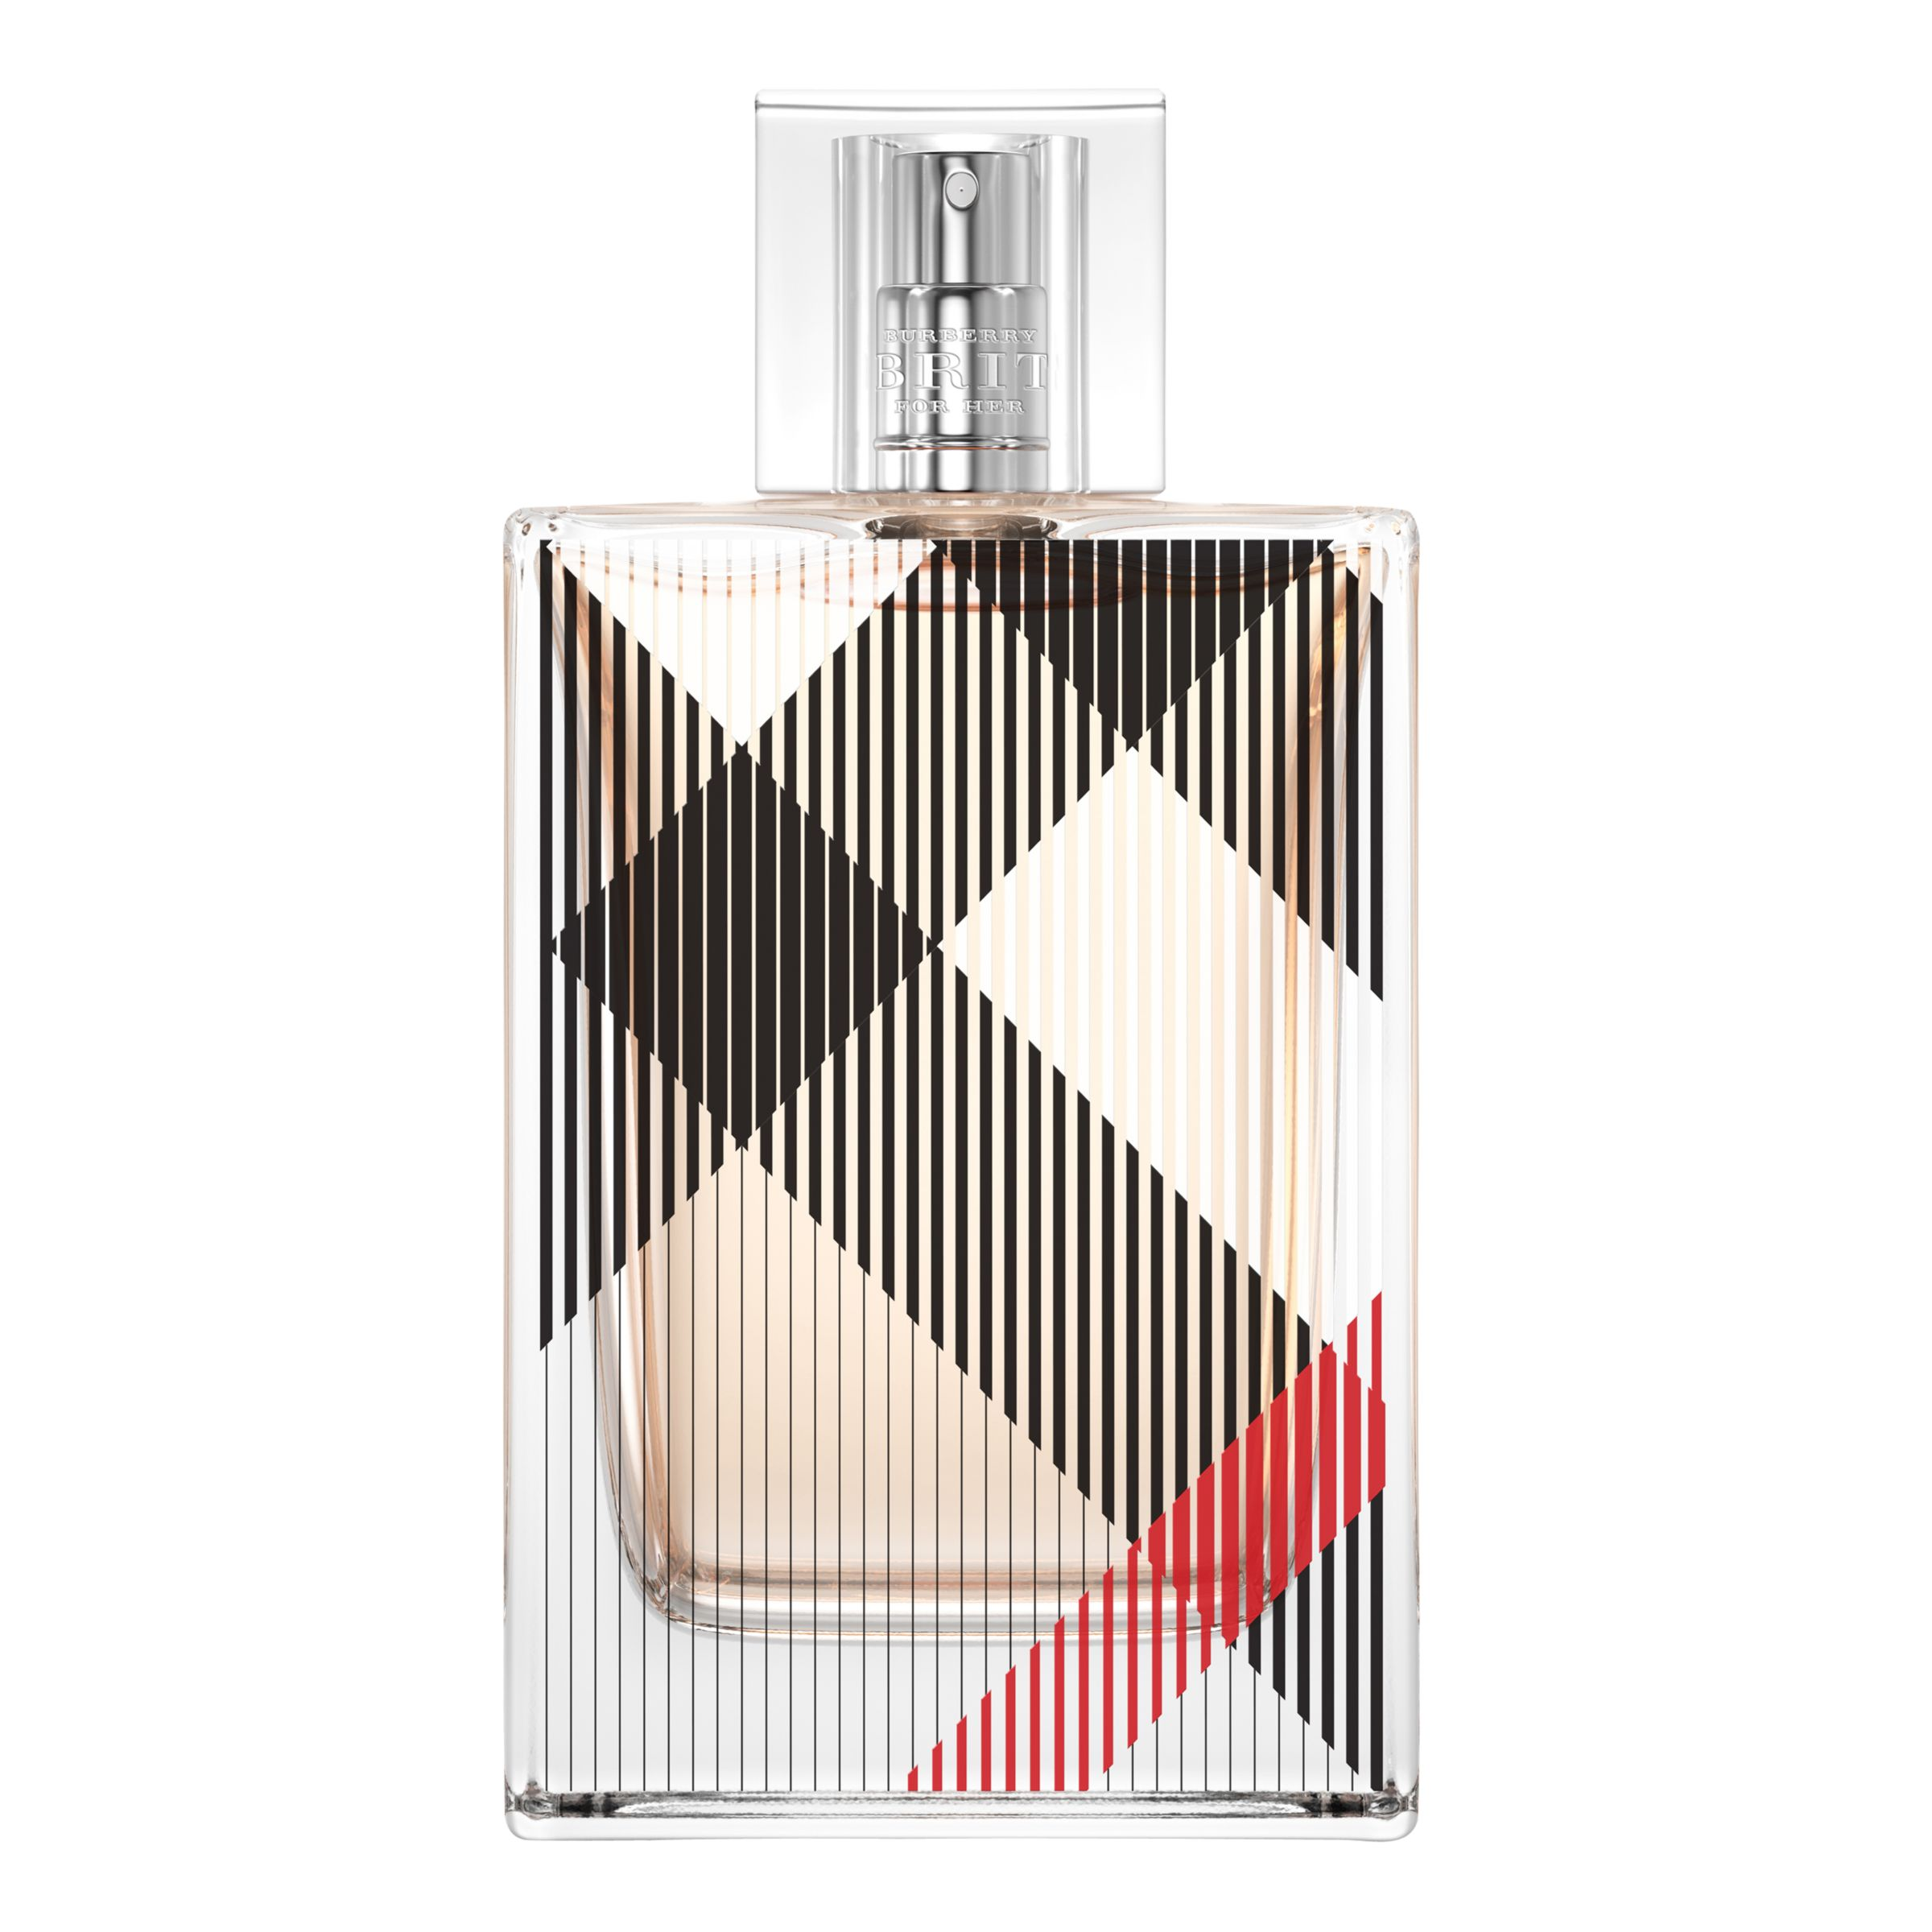 Купить Духи Burberry, Burberry Brit For Her Eau De Parfum 15ml, Великобритания